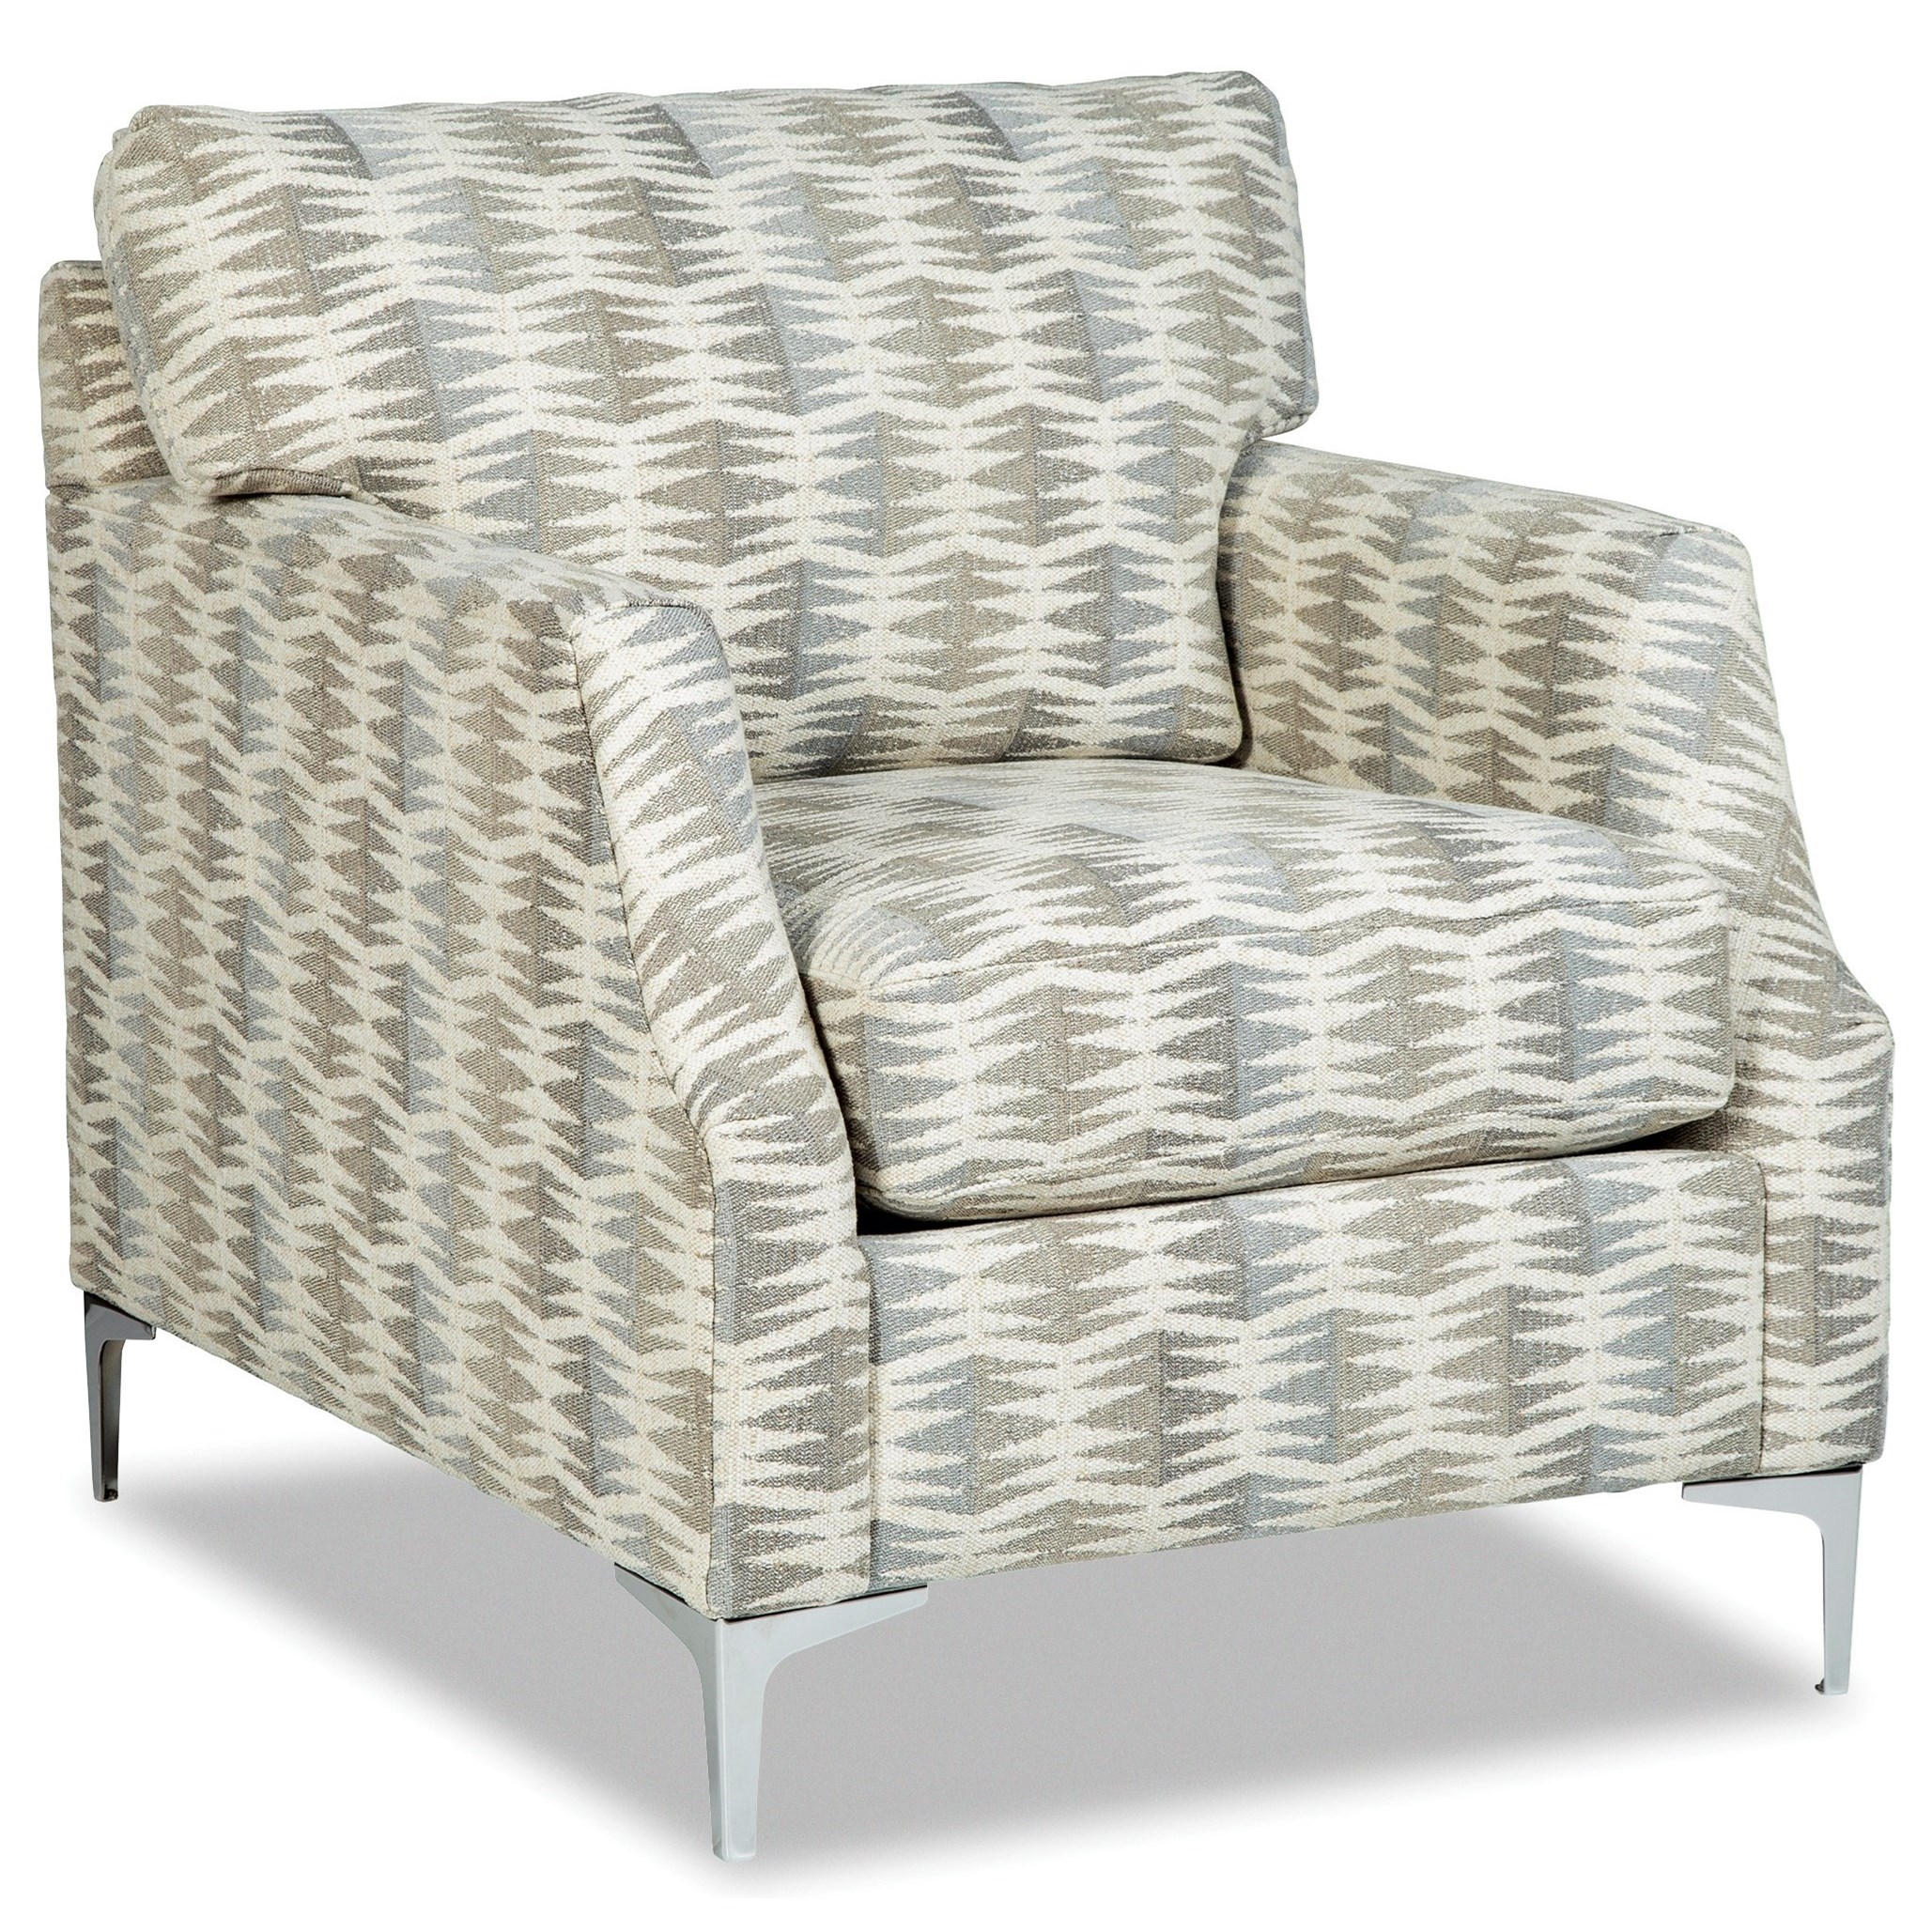 M9 Custom - Design Options Customizable Chair by Craftmaster at Baer's Furniture